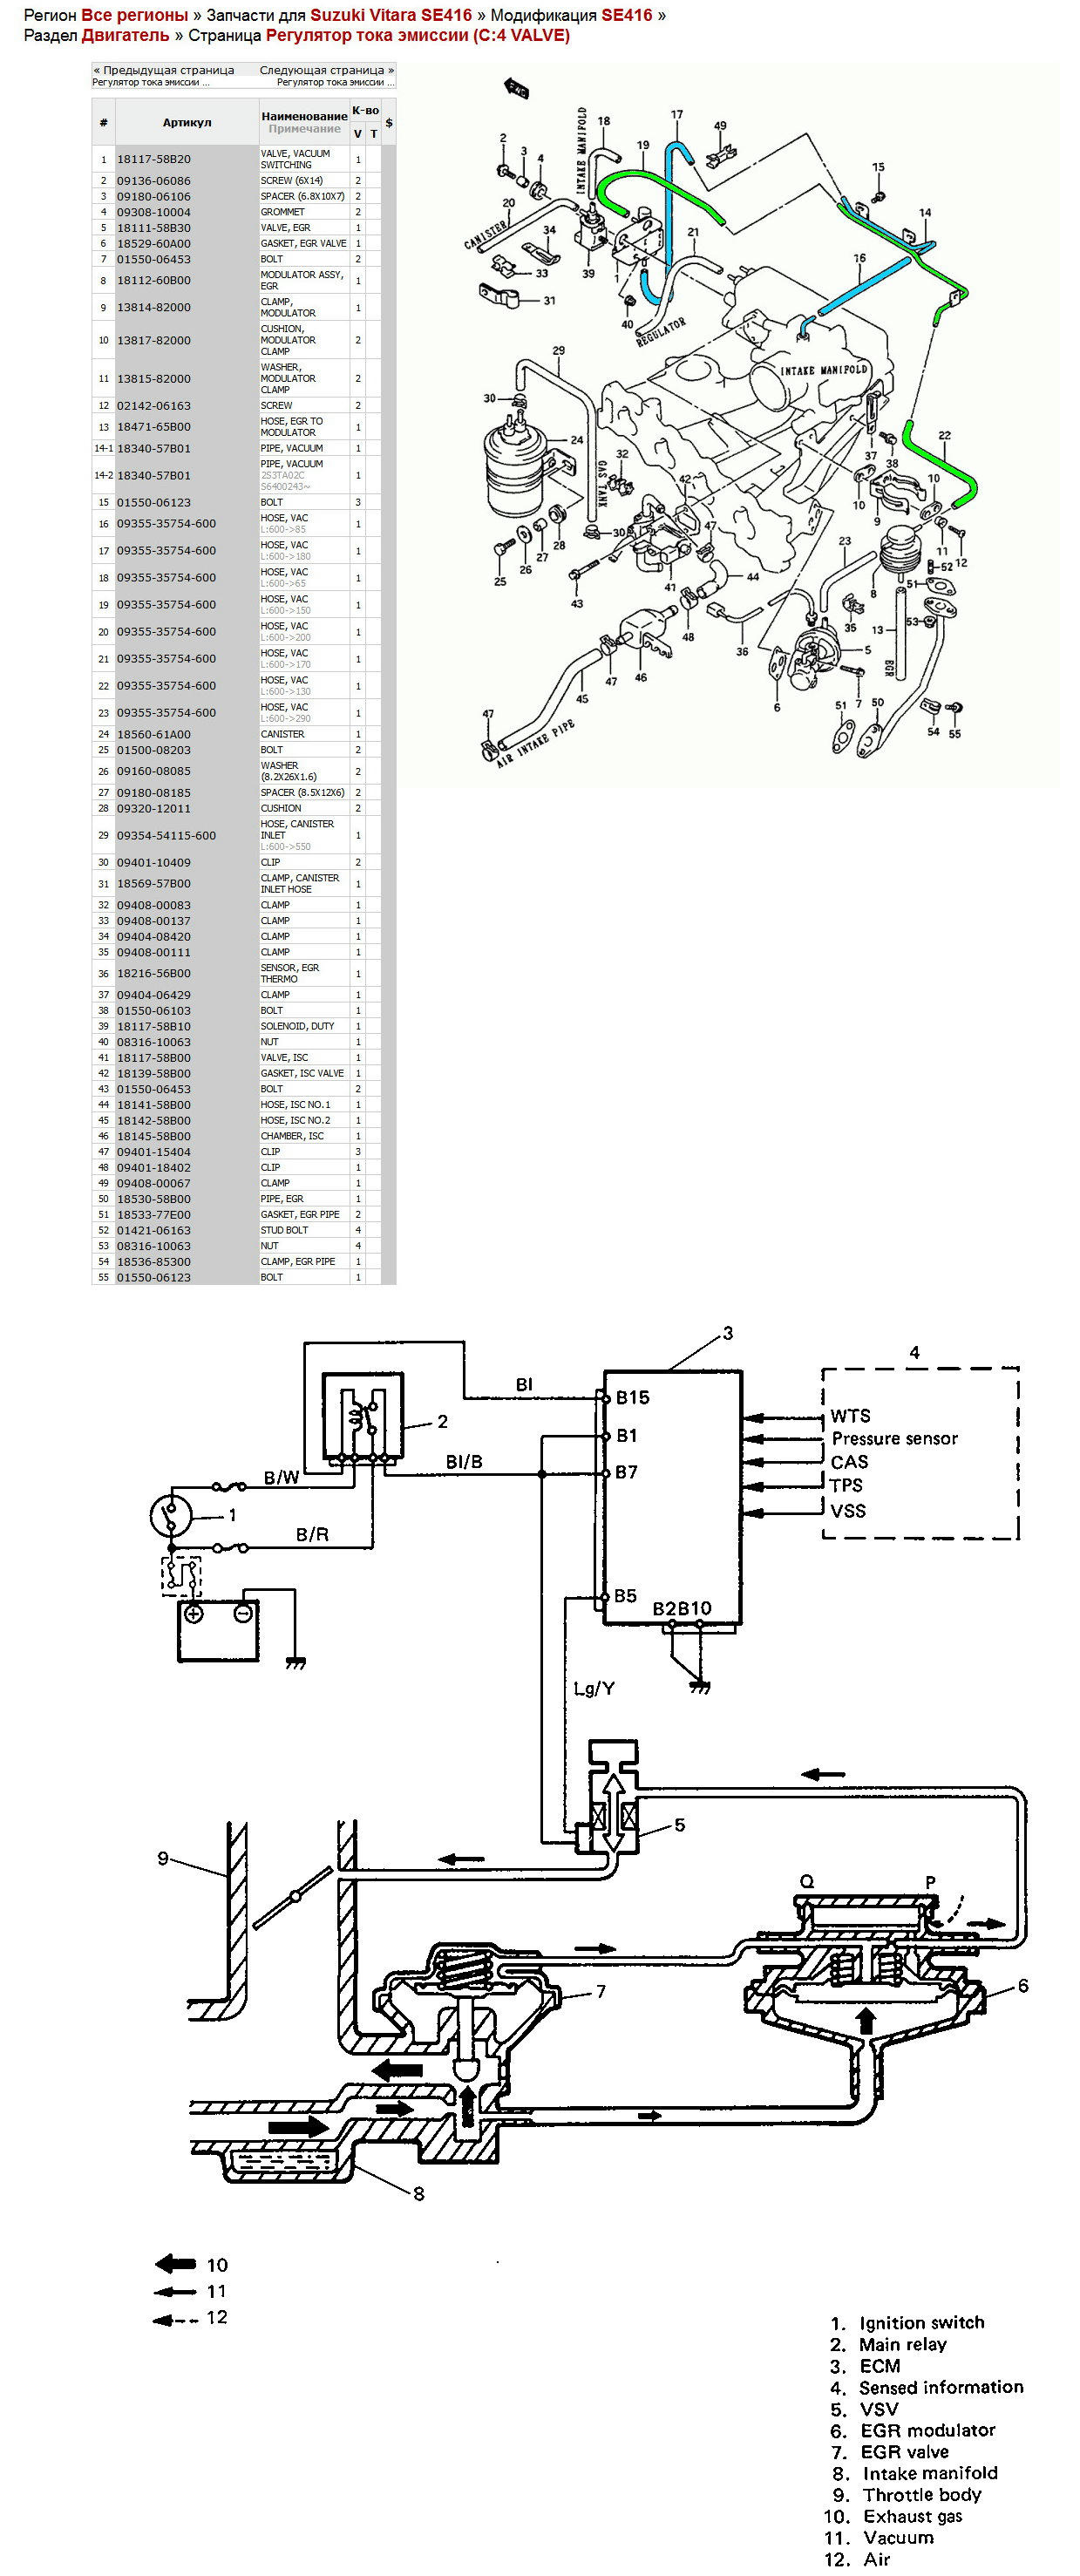 1995 Suzuki Sidekick 1 6l Engine Diagram